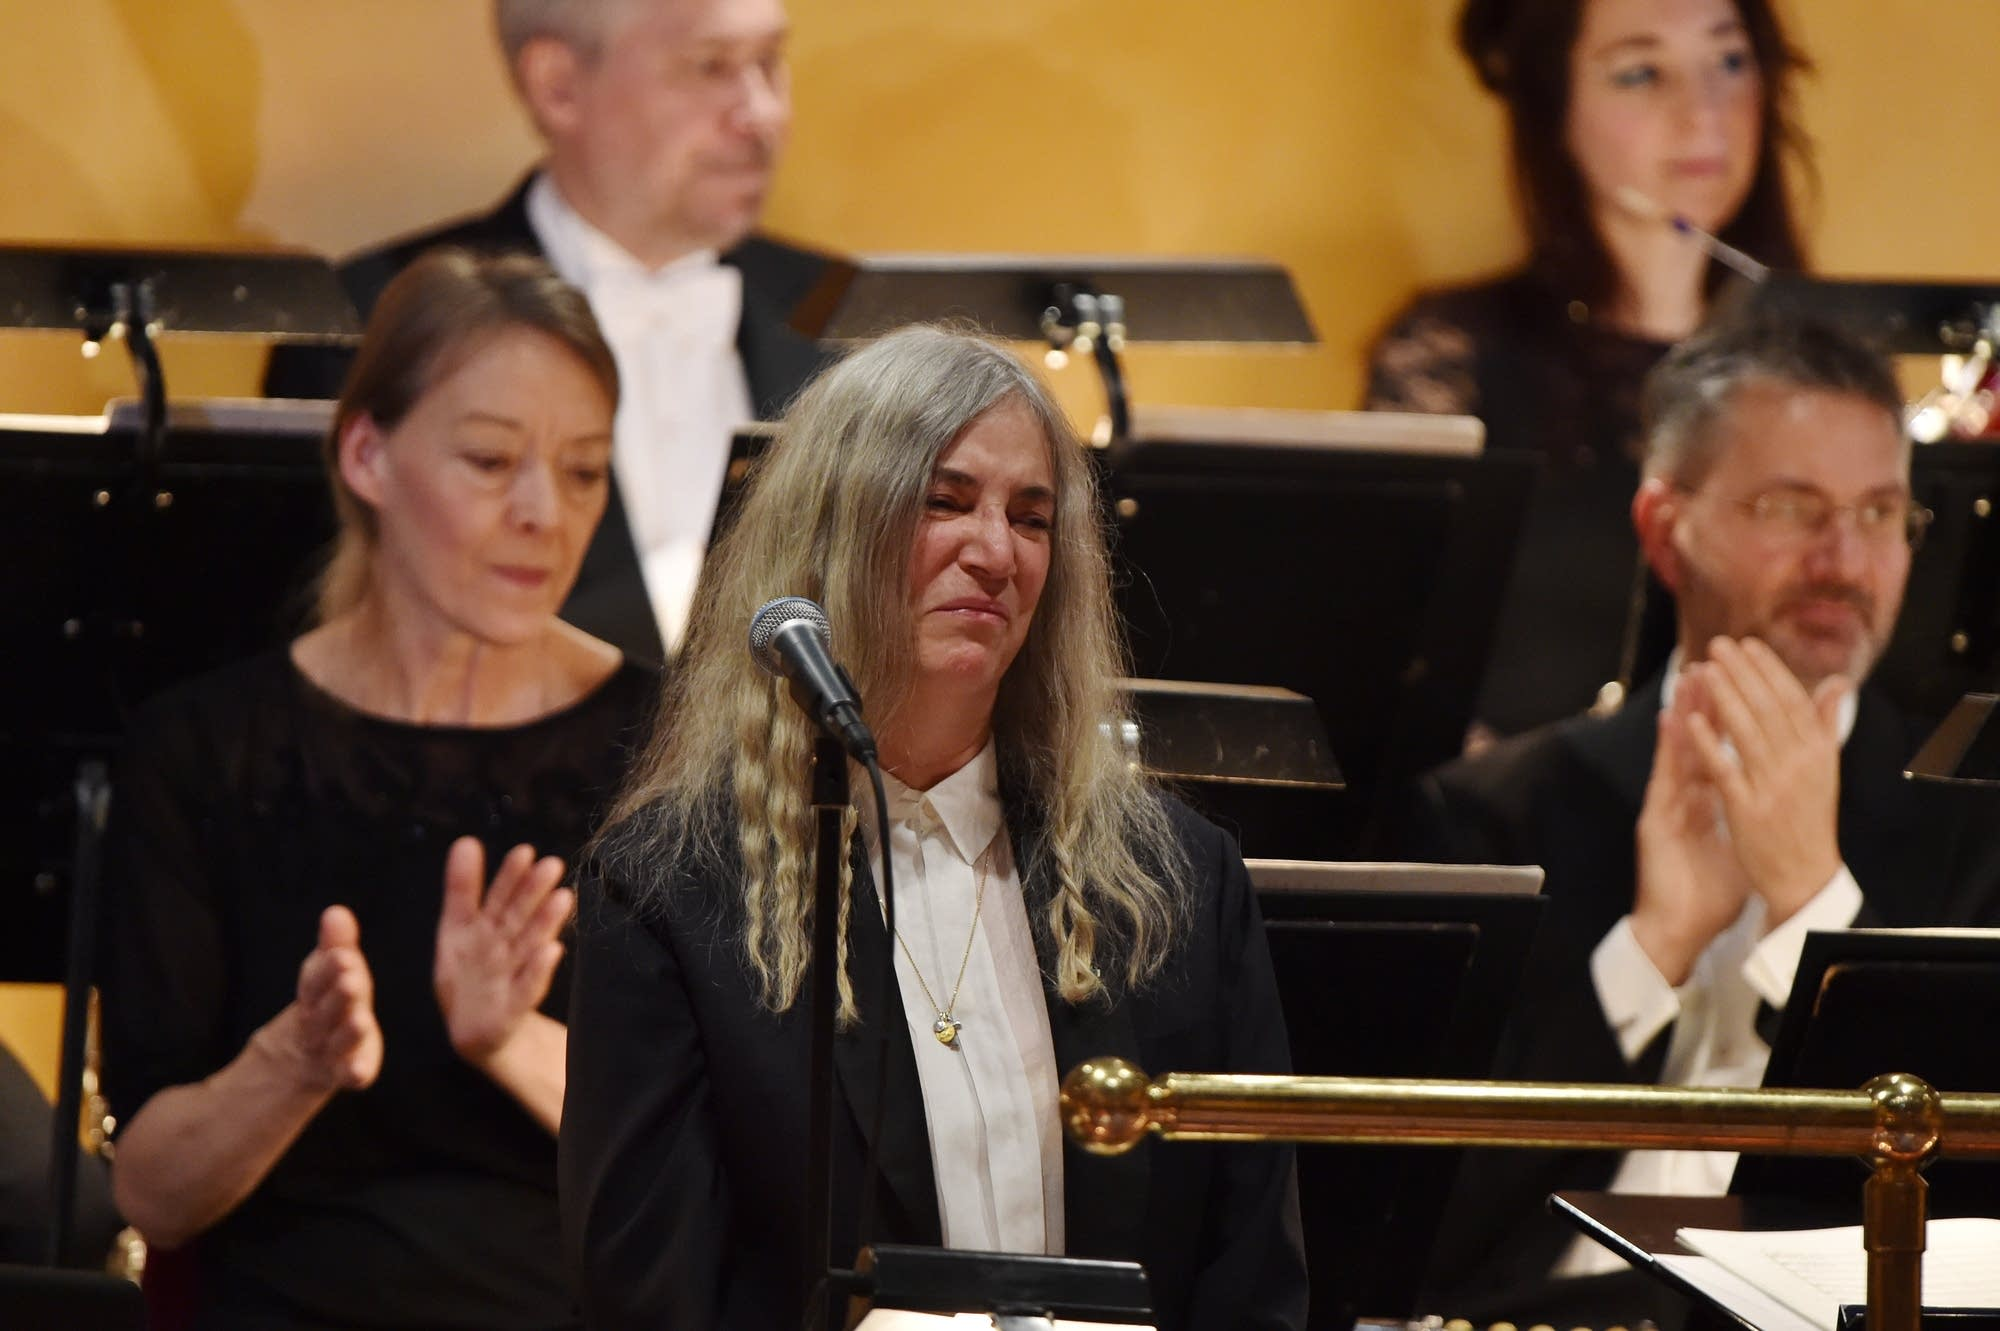 Patti Smith at the Nobel Prize Ceremony